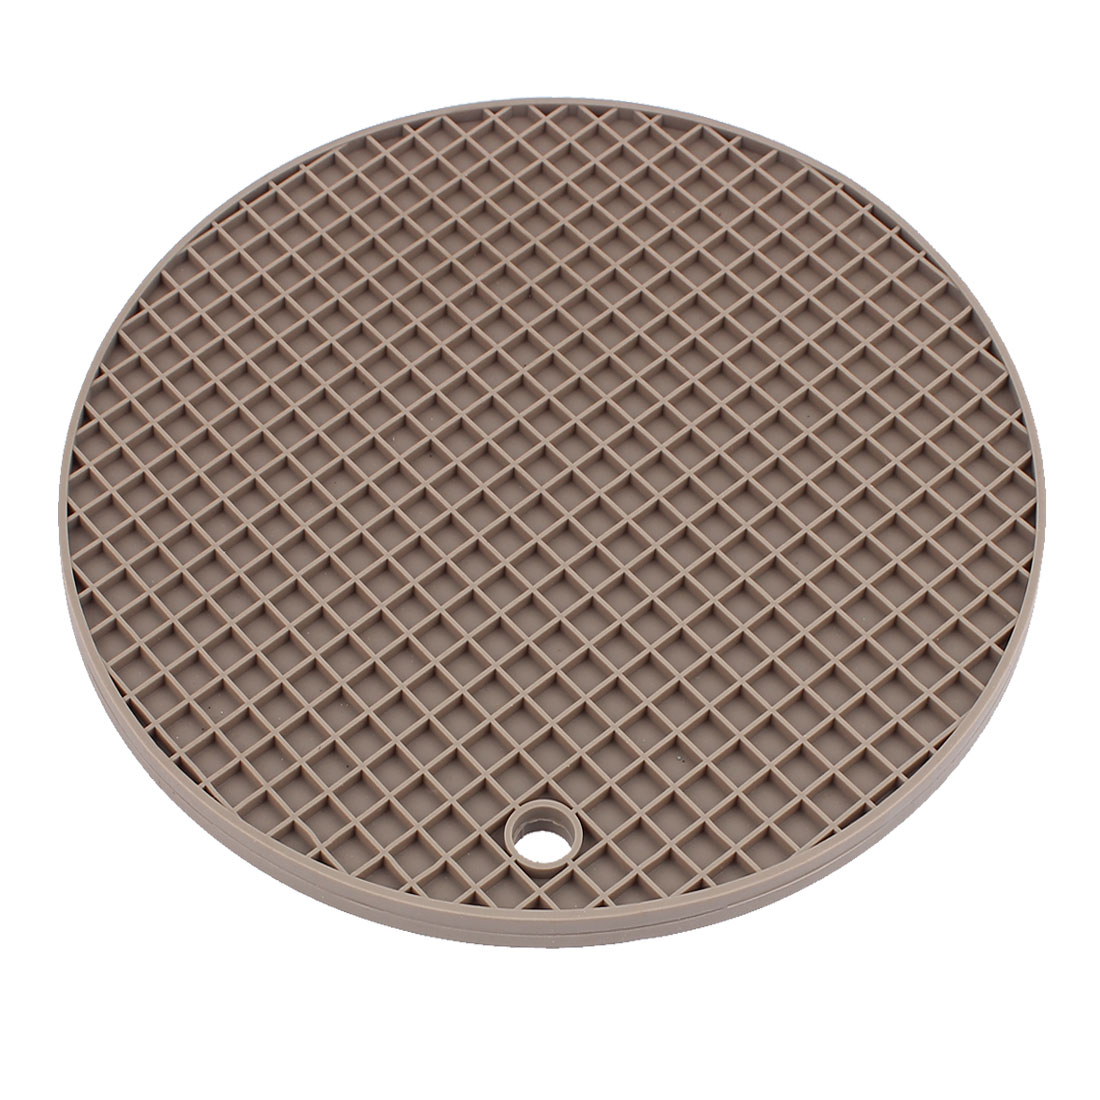 Kitchen Silicone Round Shaped Pot Holder Heat Resistant Mat Light Gray